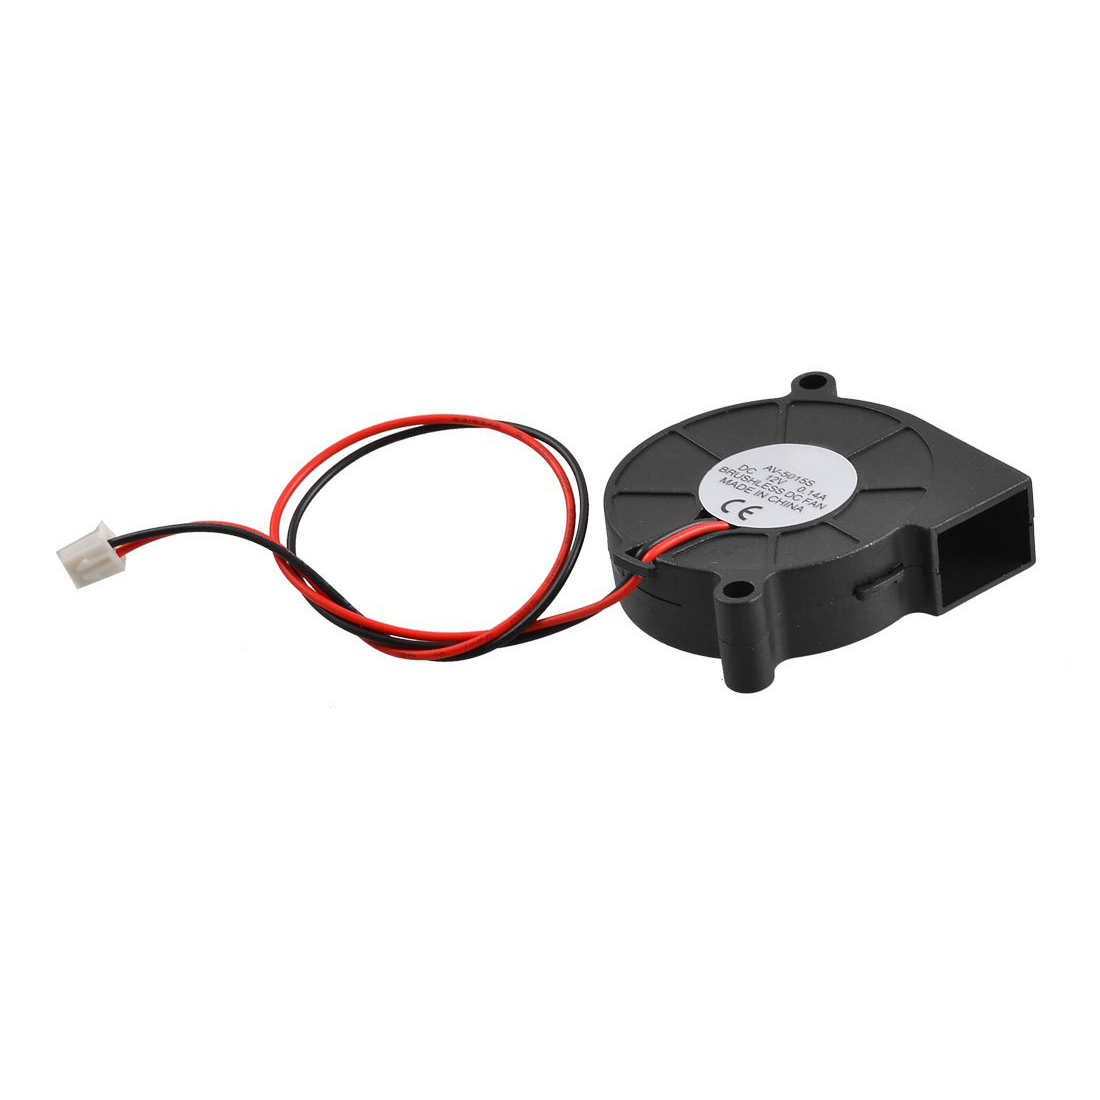 1Pcs Brushless DC Cooling Blower Fan 5V 5015s 50x50x15mm 0.23A Sleeve 2 Pin Wire